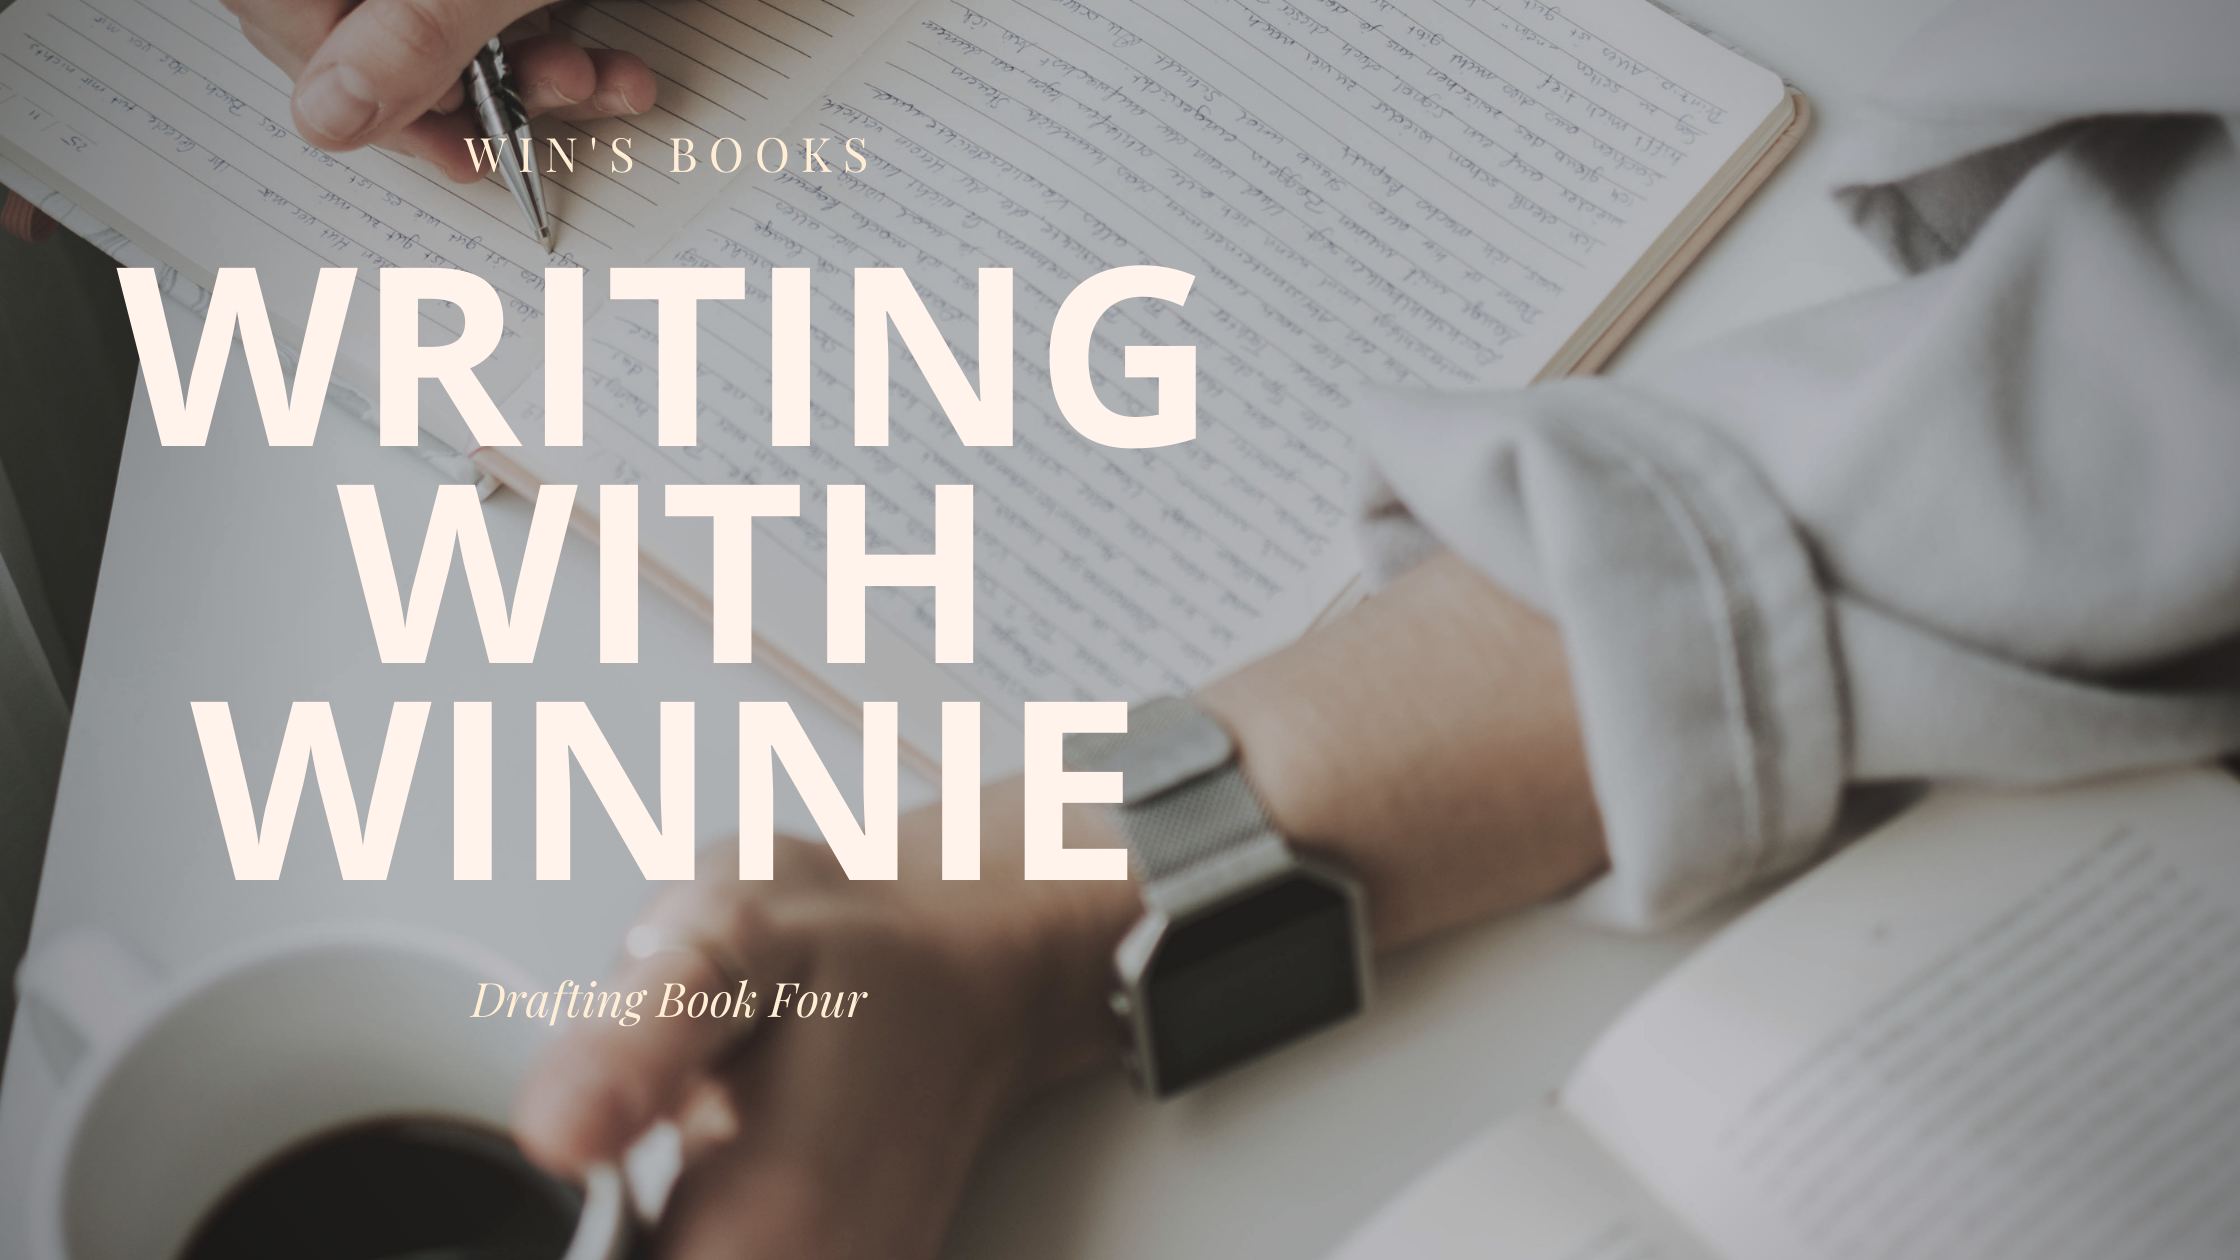 Writing with Winnie: Drafting Book Four